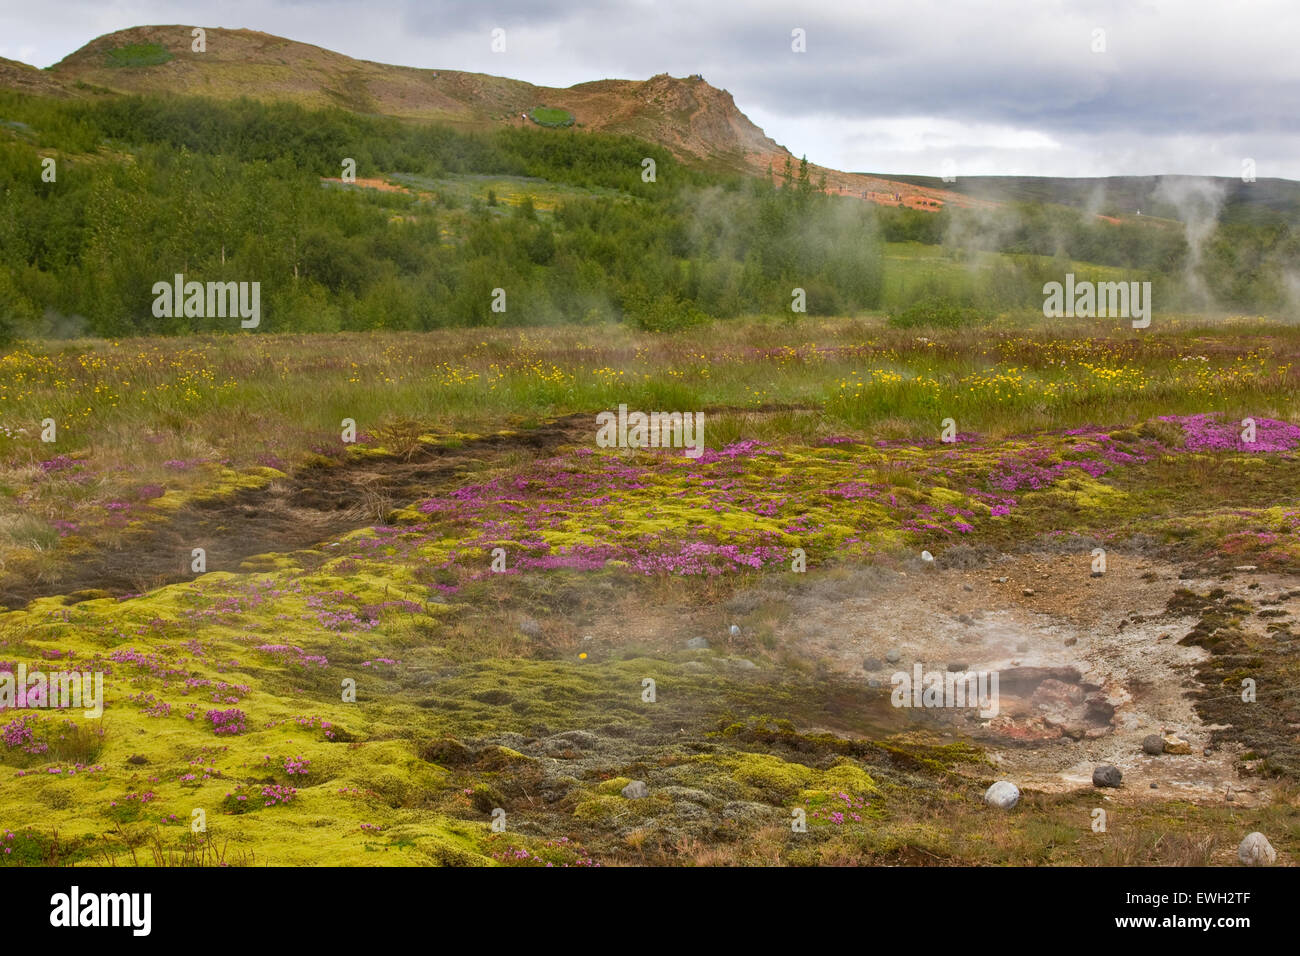 Geothermal area in Iceland - Stock Image